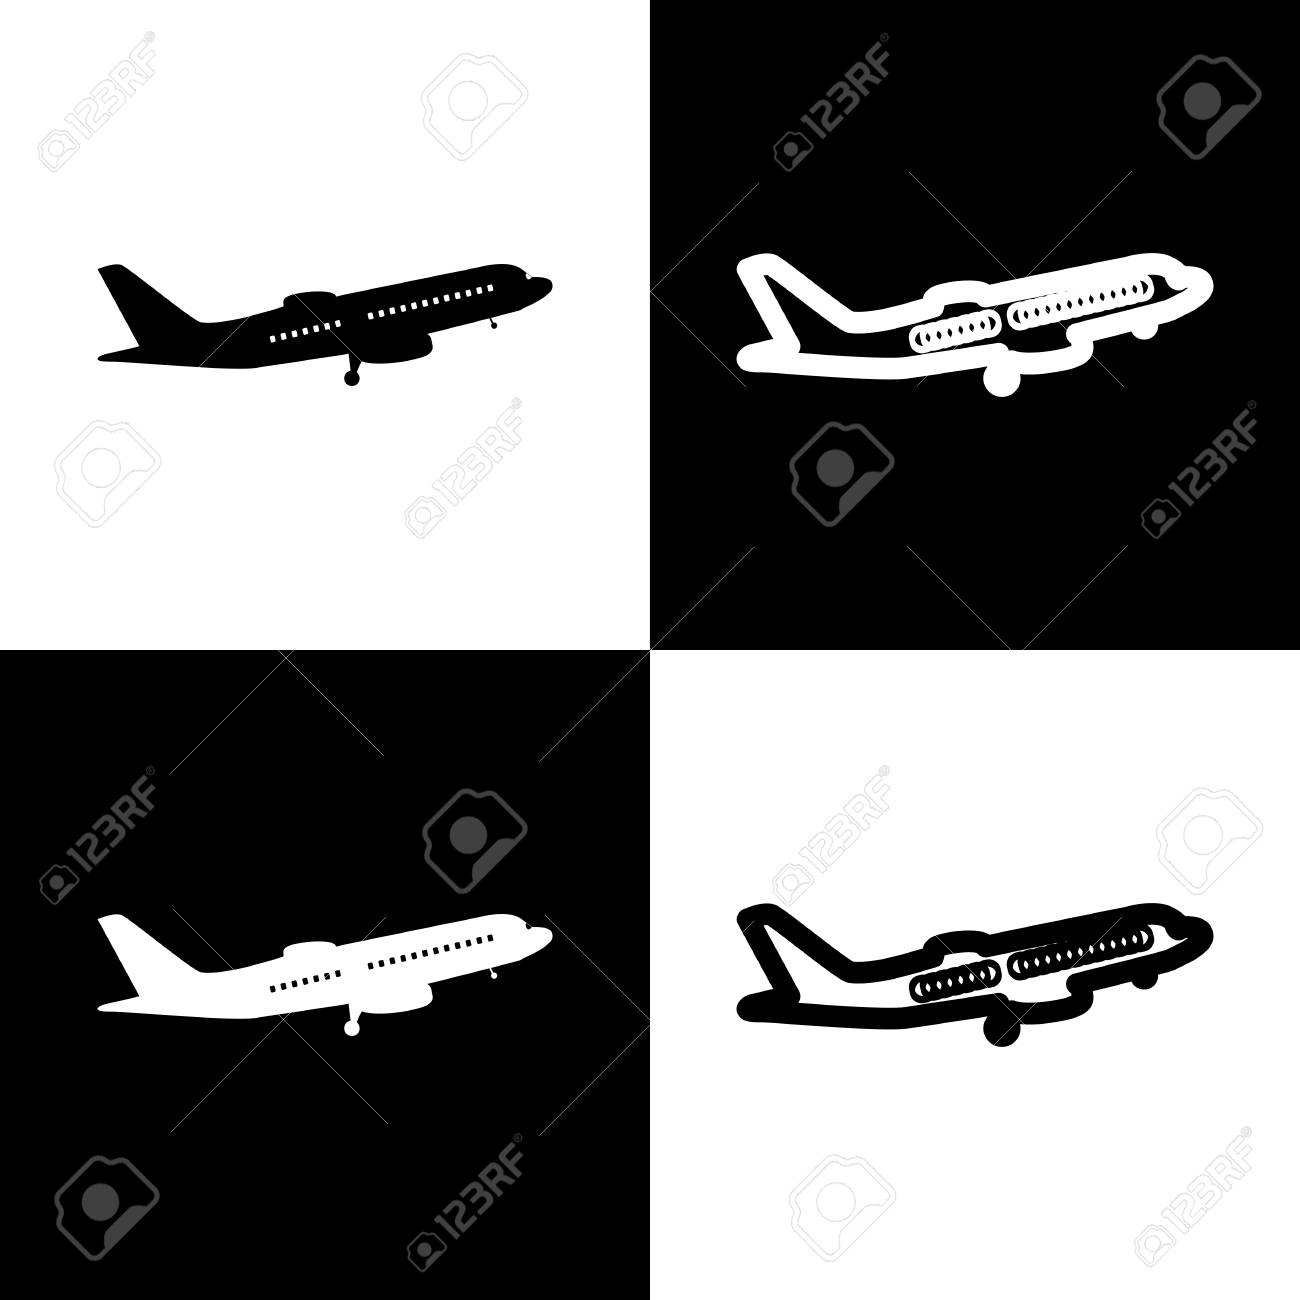 Flying Plane Sign Side View Vector Black And White Icons And